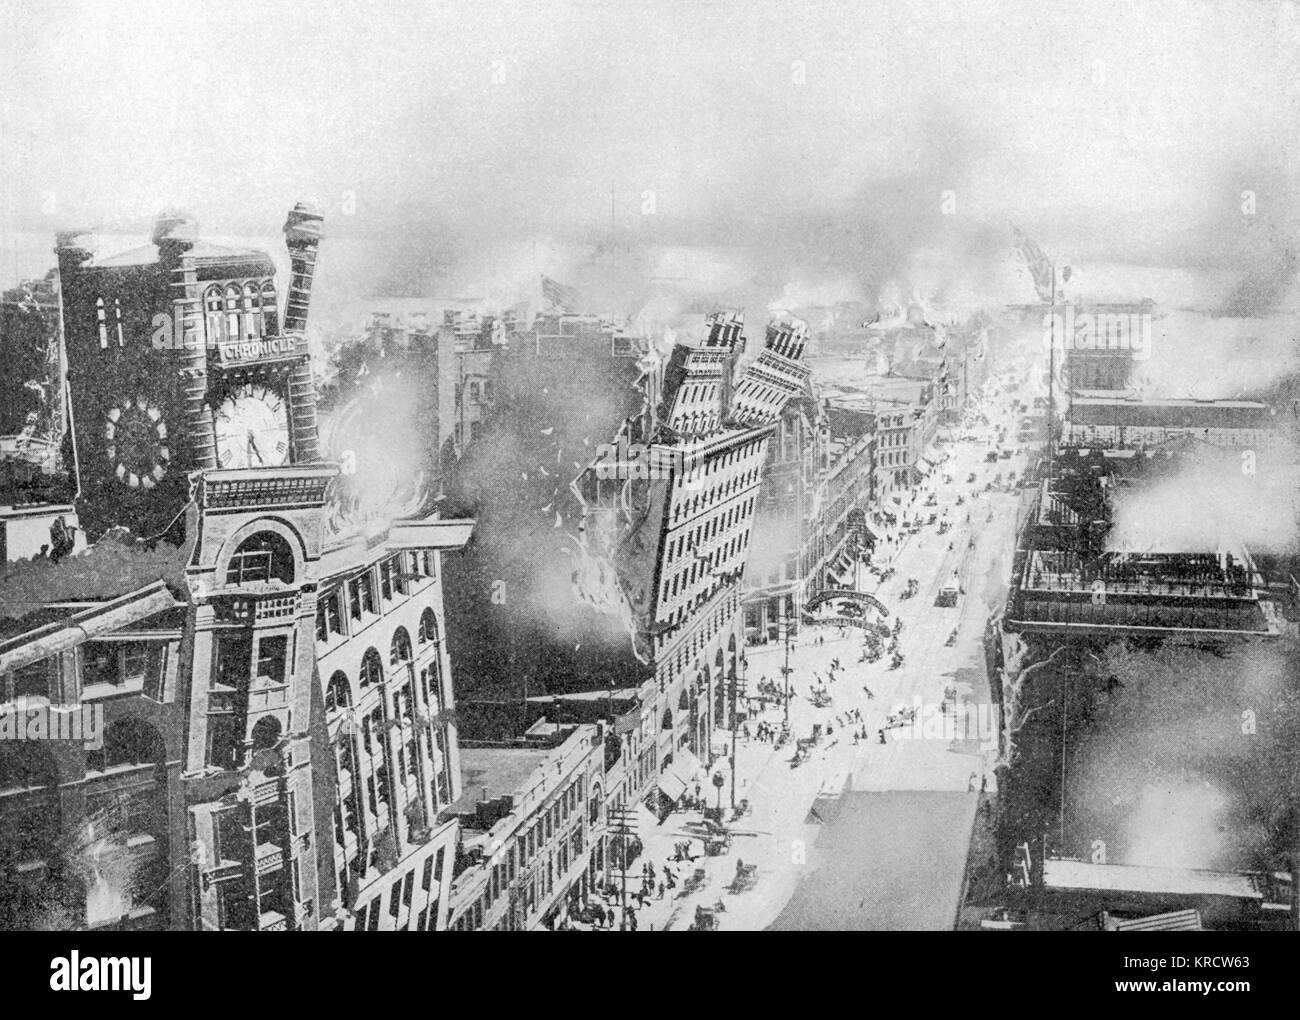 The devastation caused by the earthquake along a street of tall buildings. Date: April 18th, 1906 - Stock Image